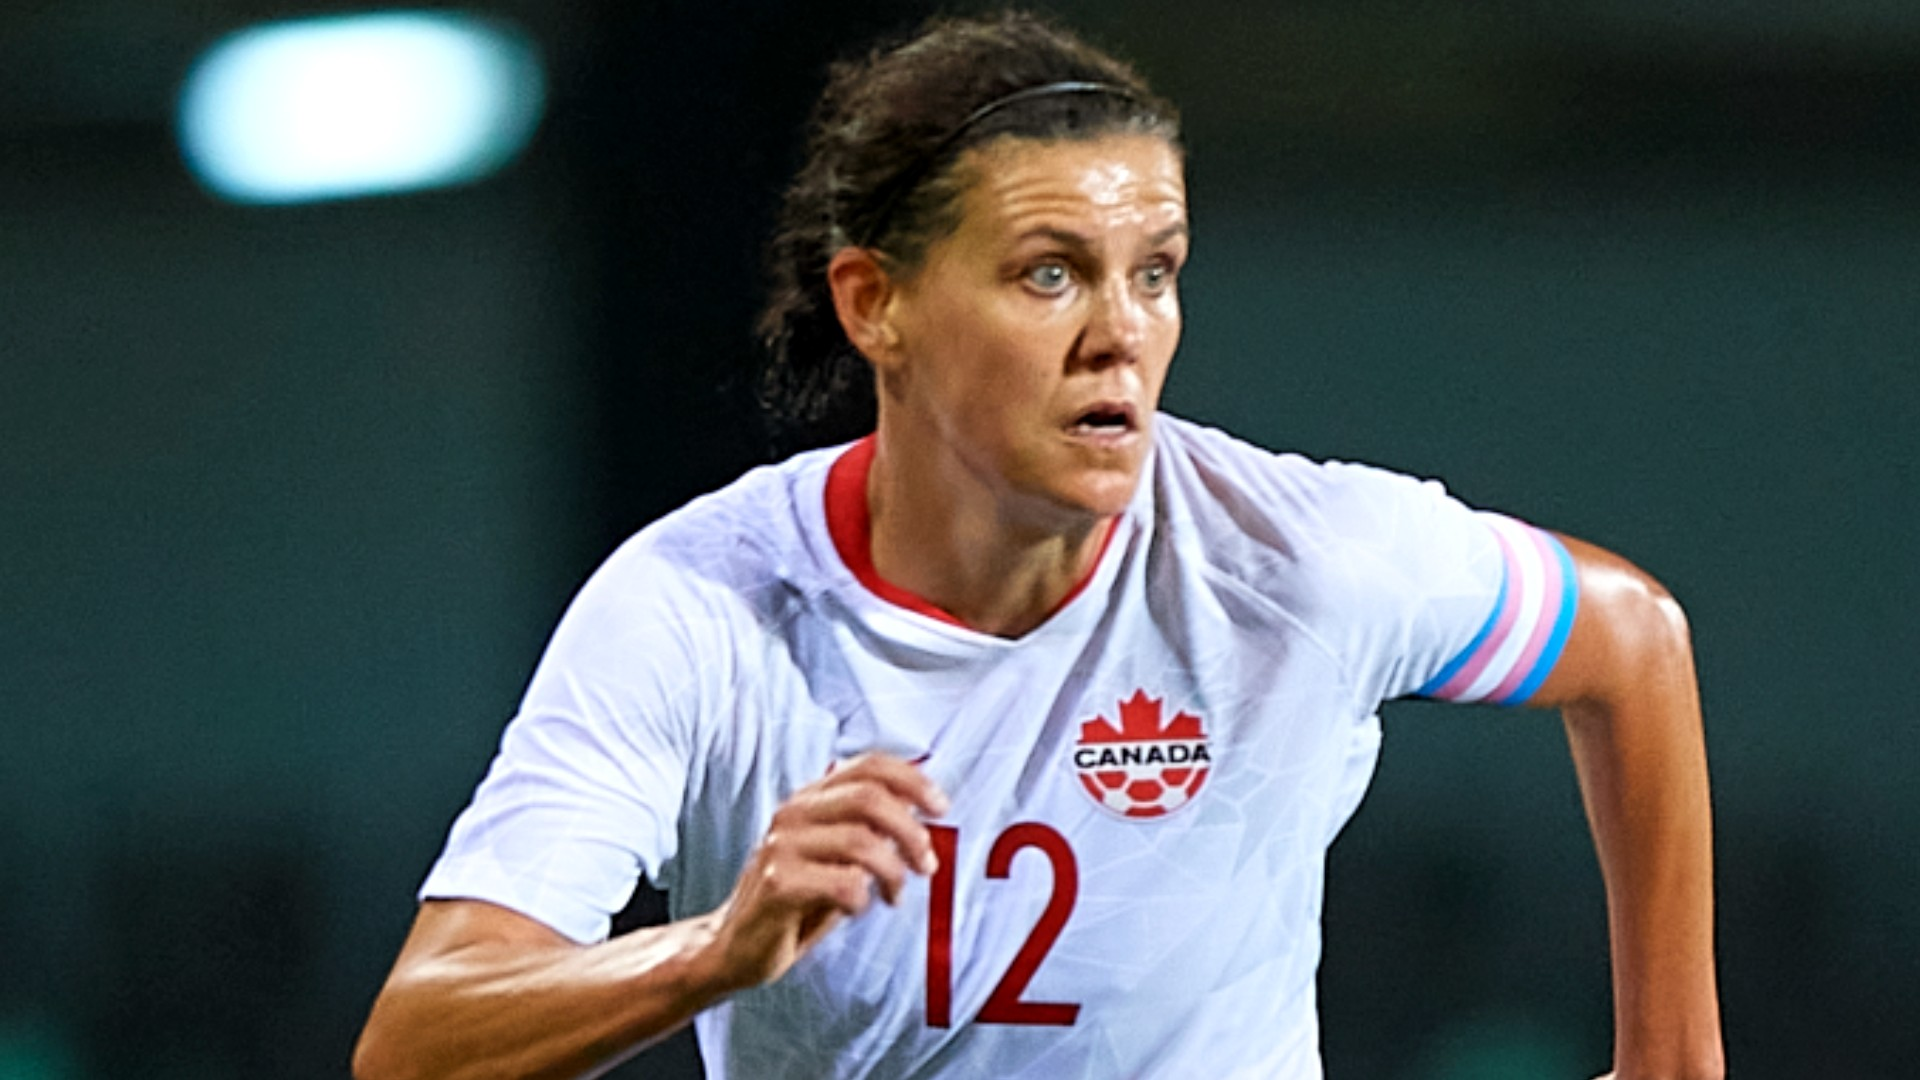 Canada vs. Sweden: Time, channel, TV, stream to watch Olympic women's soccer gold medal match